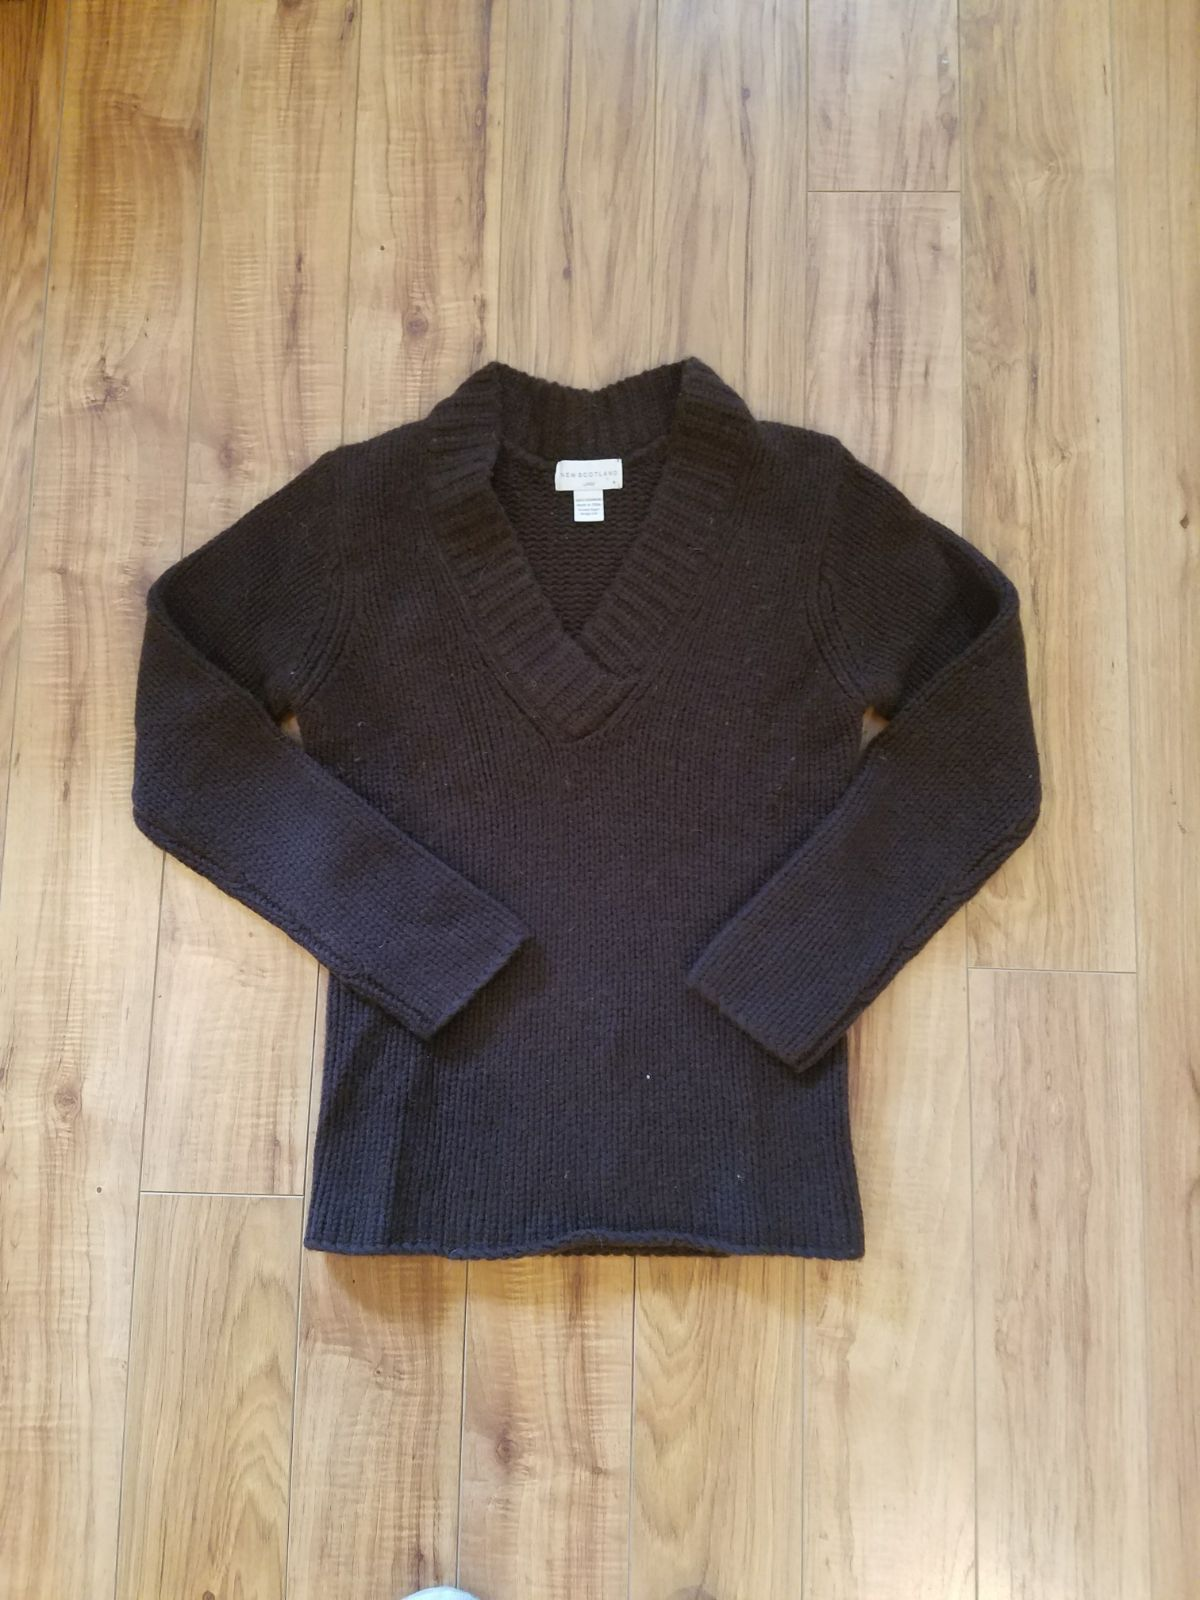 New Scotland Cashmere Sweater sz L - Mercari: BUY & SELL THINGS ...